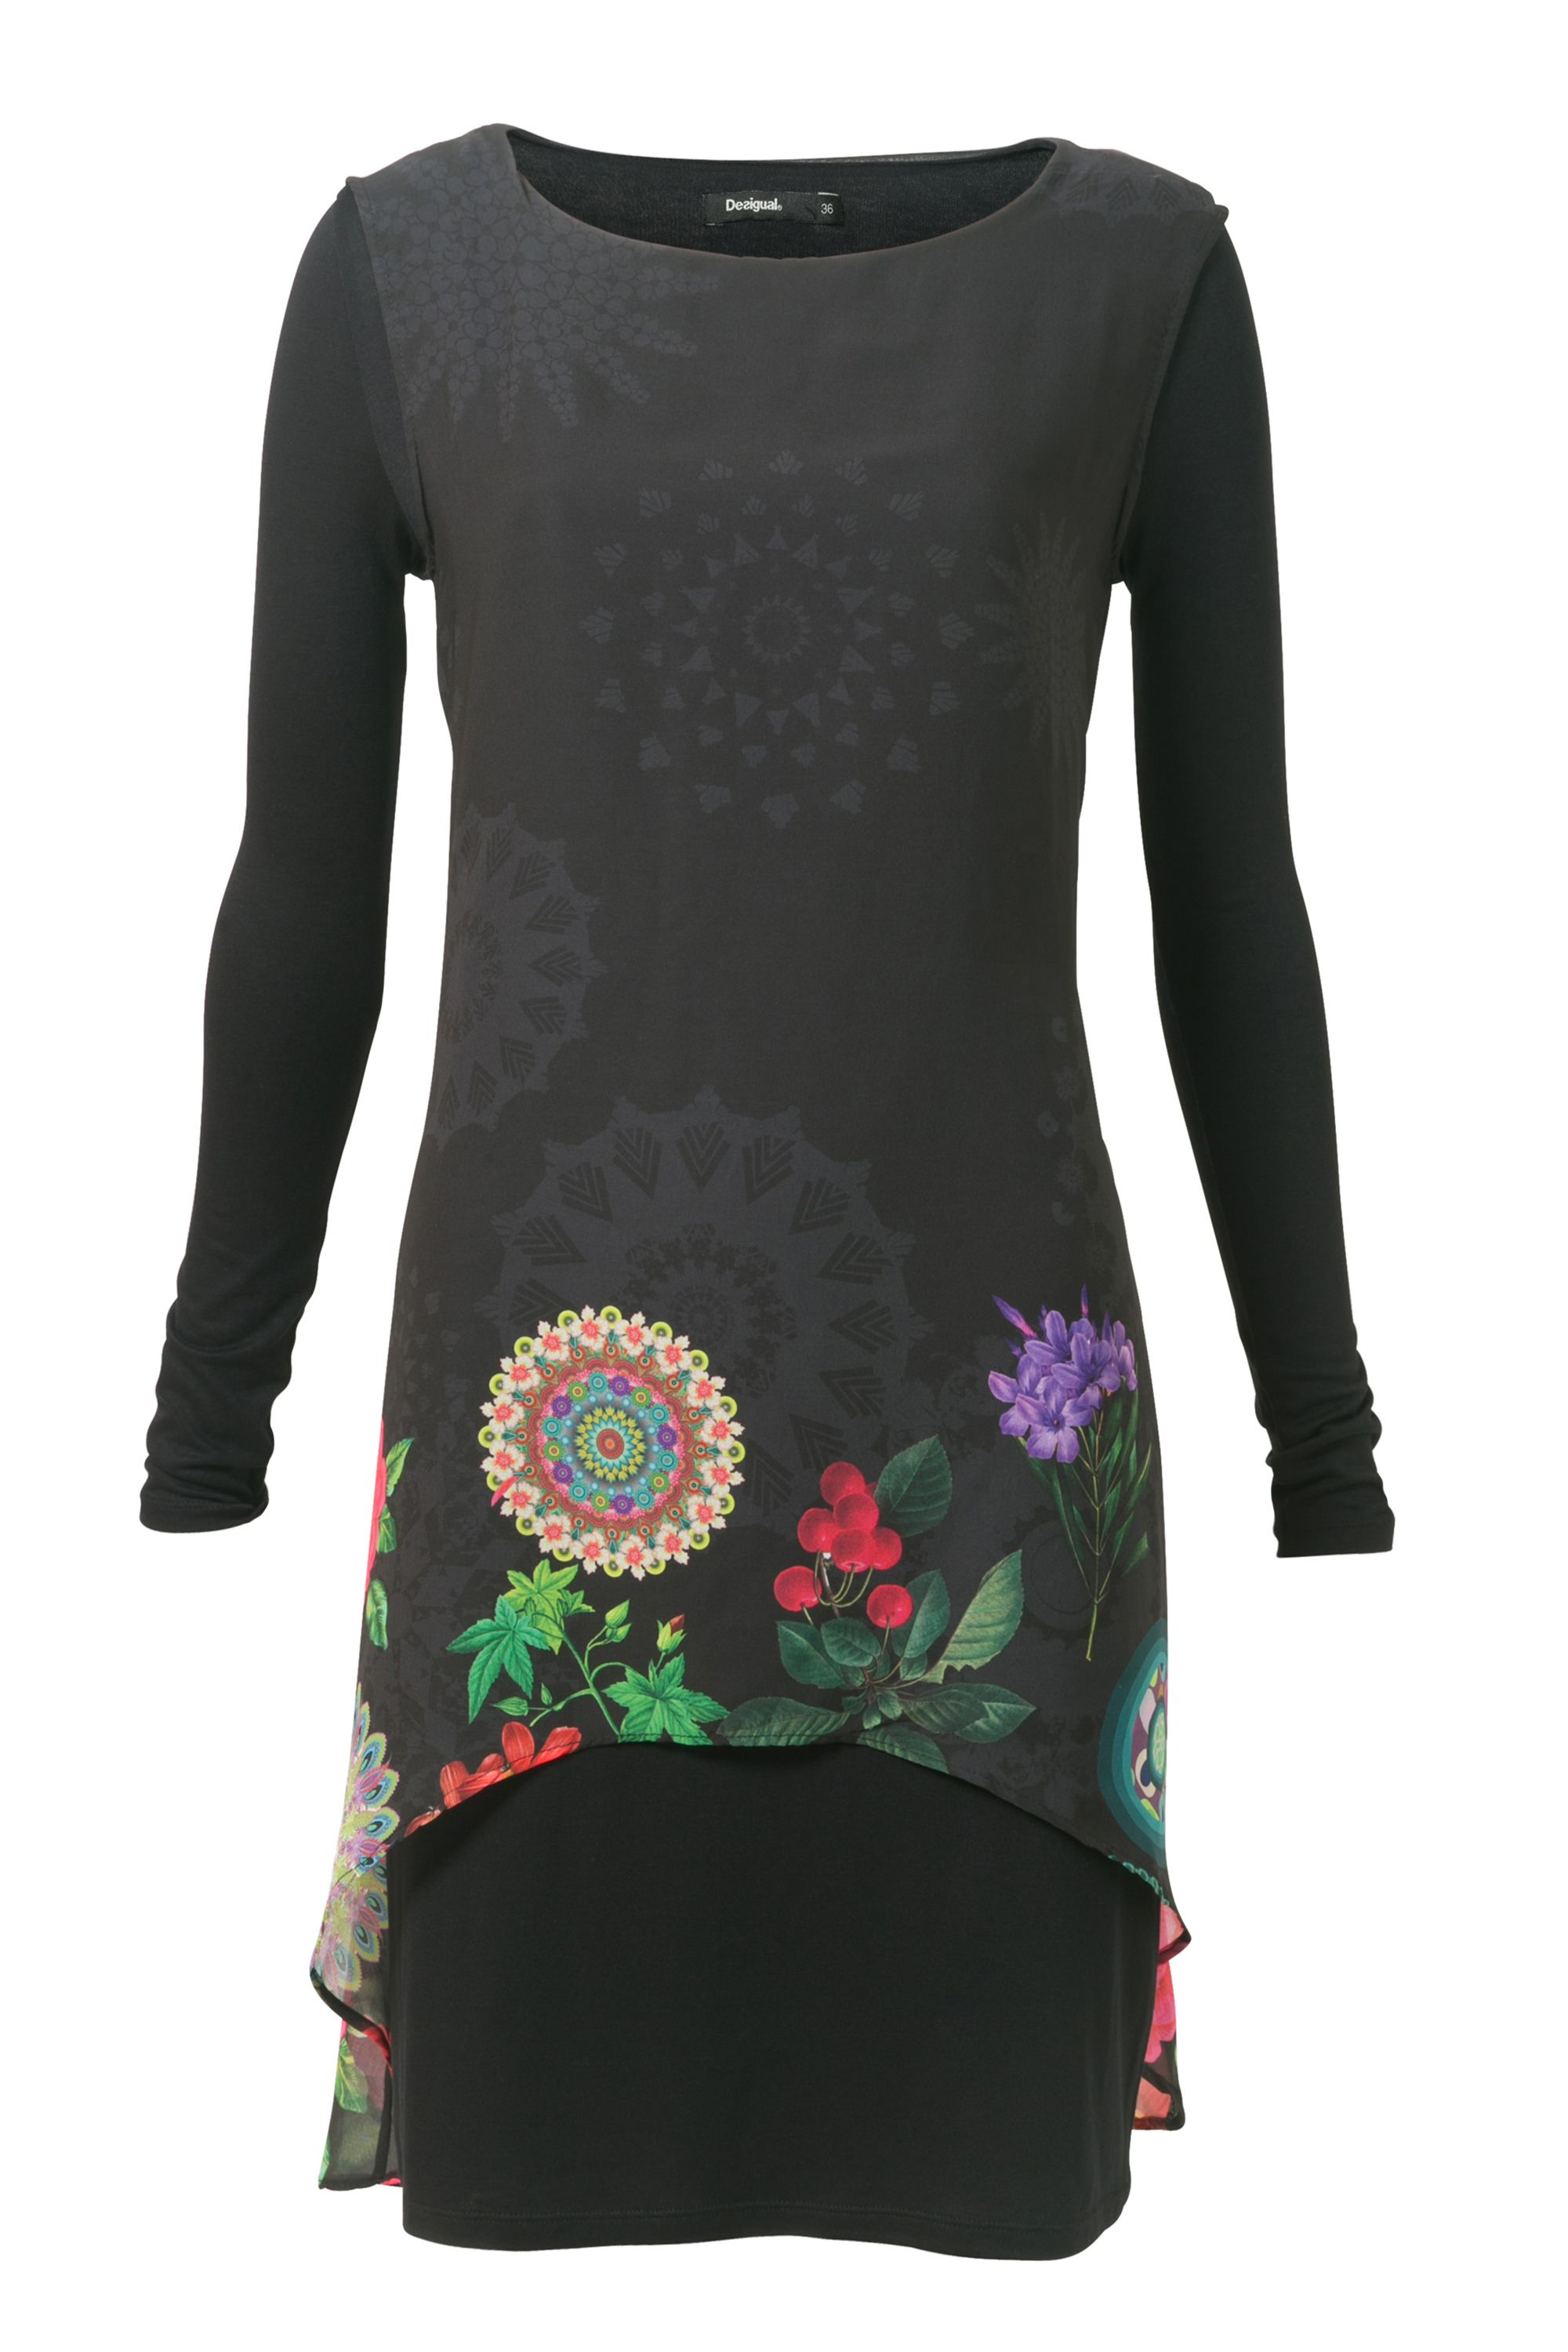 Desigual Dress Kerowac, Black